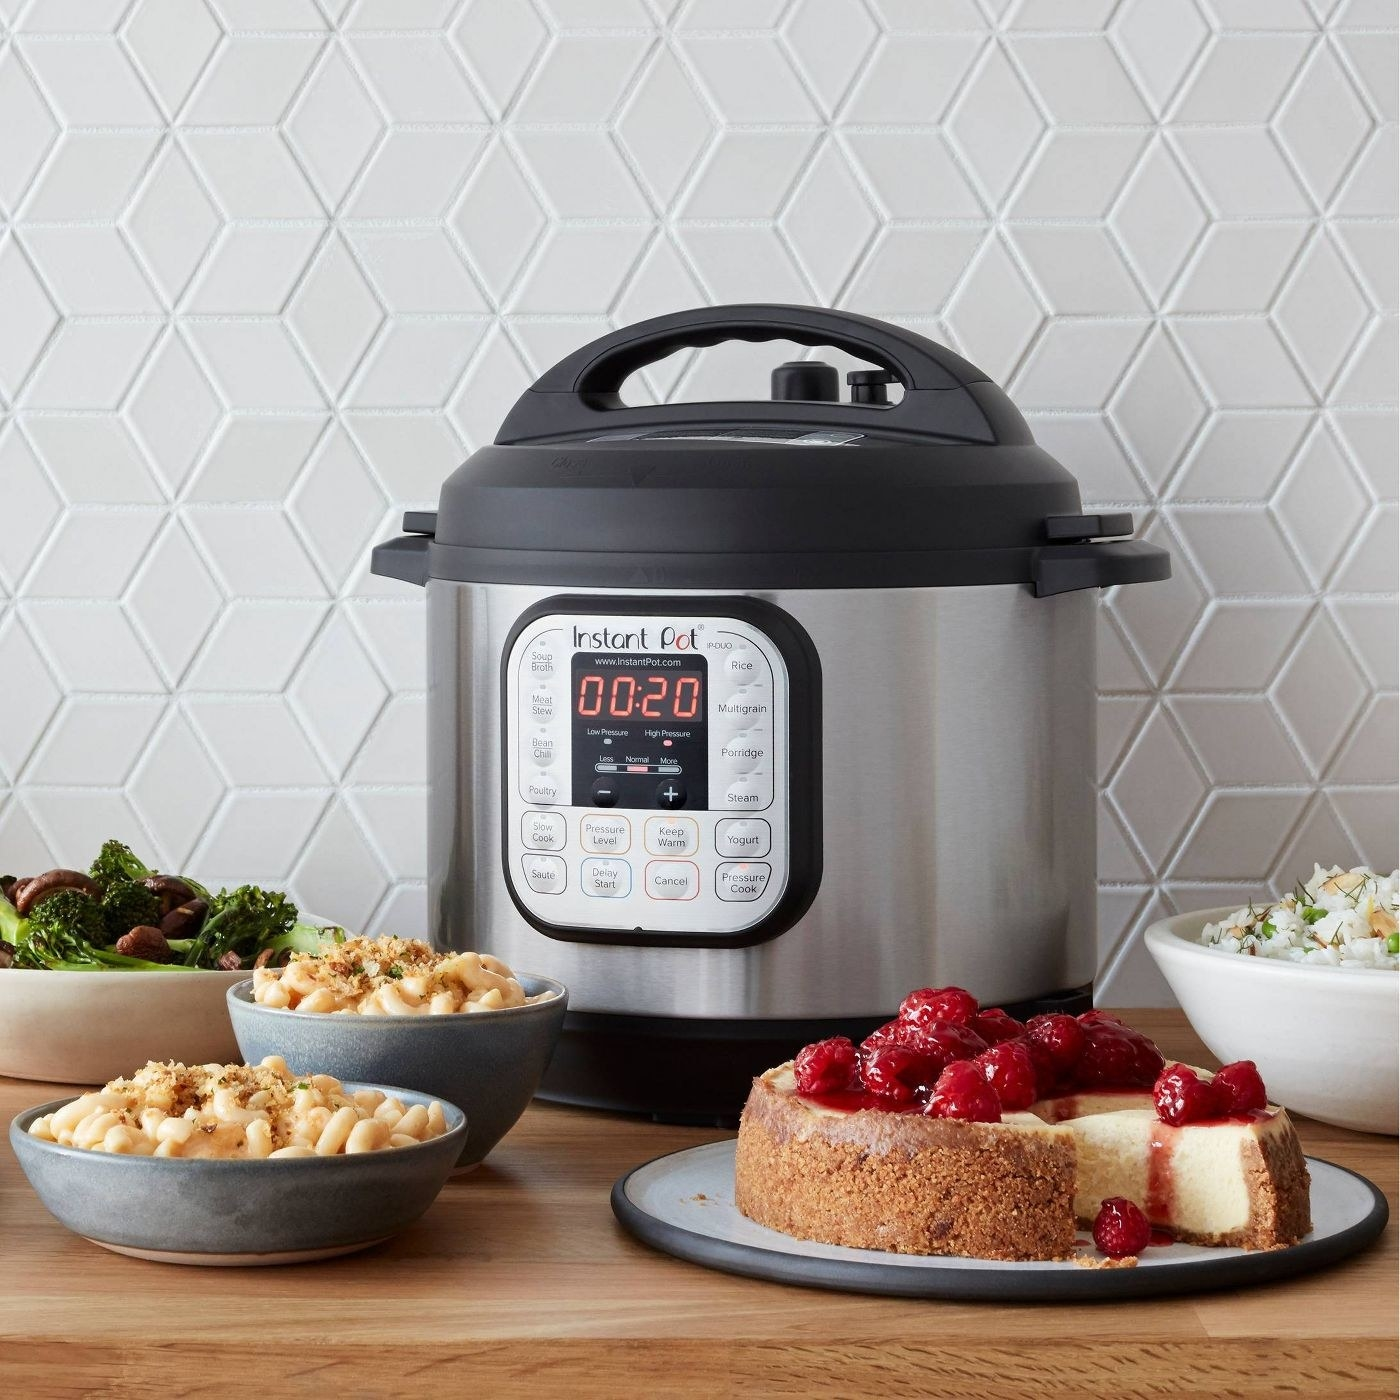 The Instant Pot Duo beside several dishes to show the versatility of its cooking features